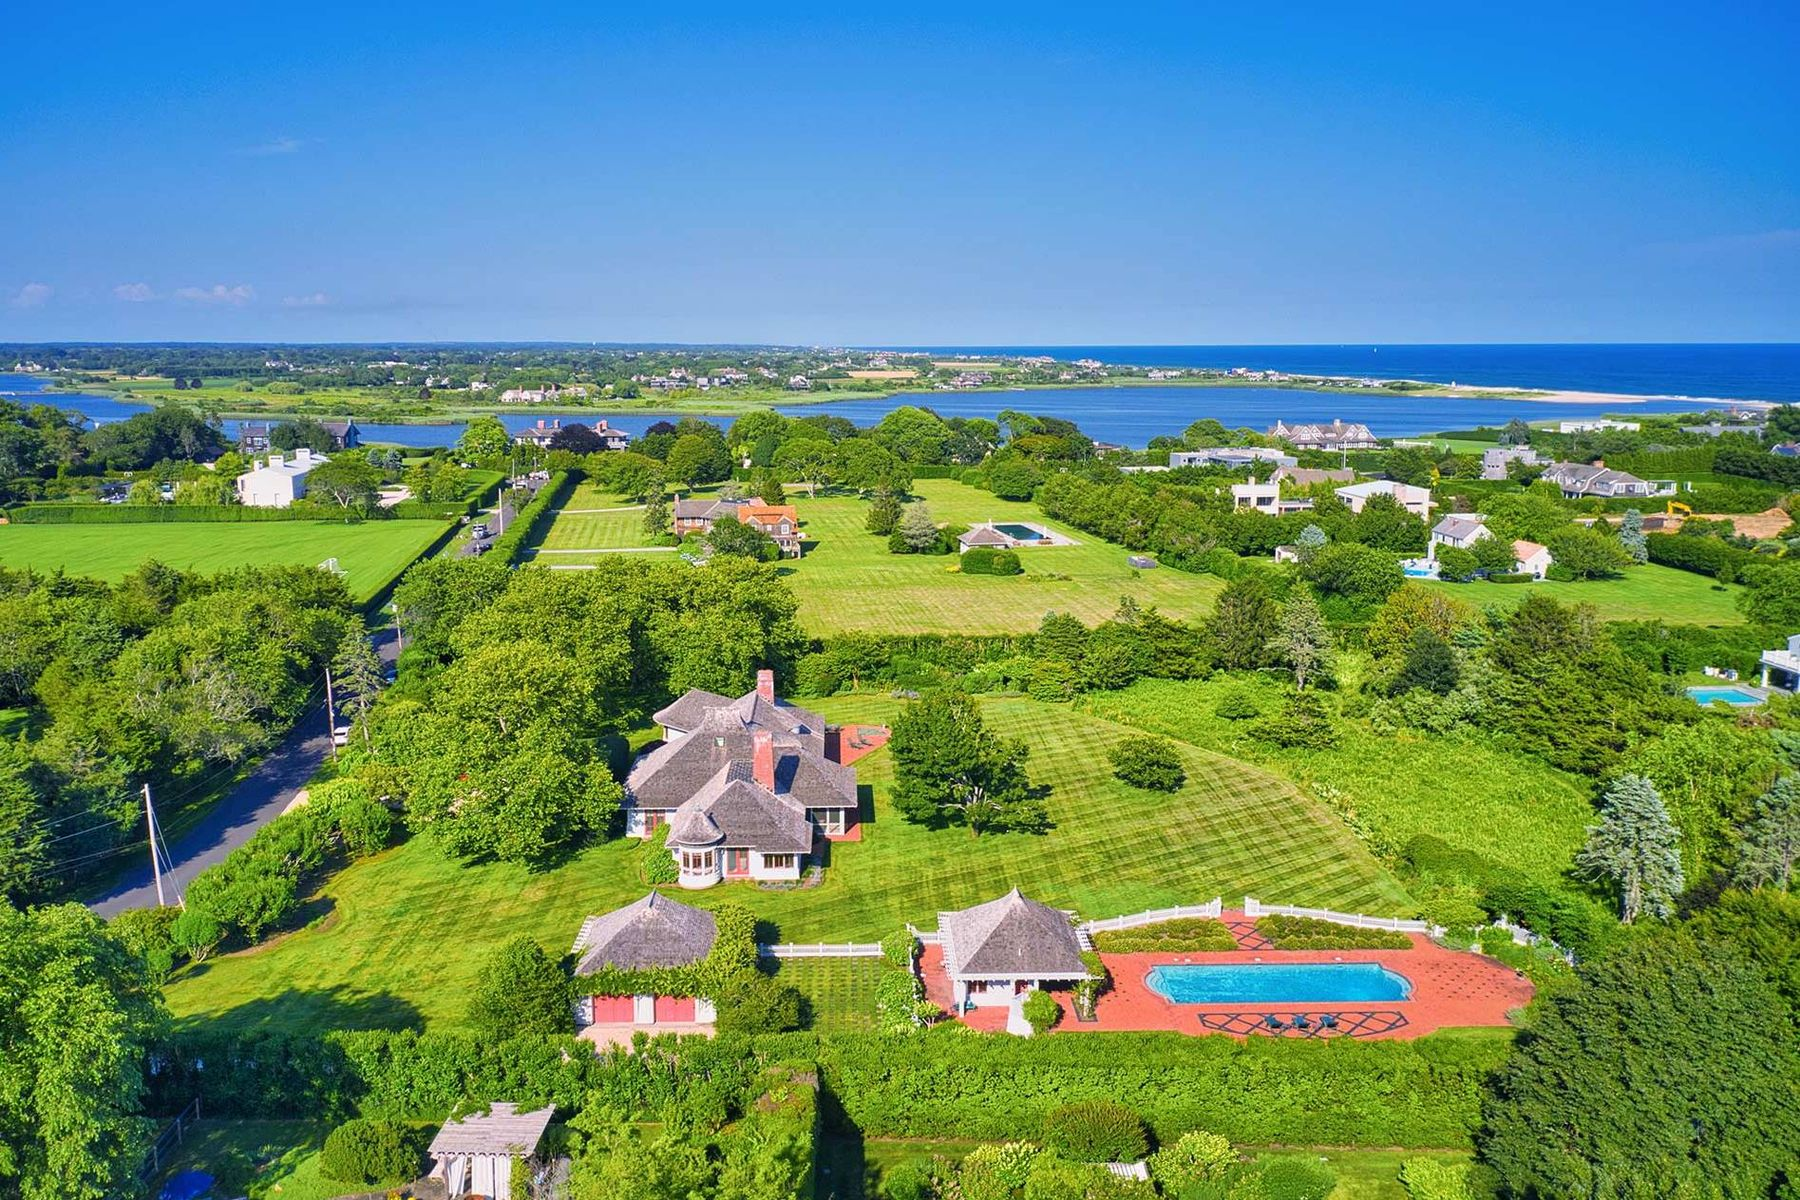 Single Family Homes for Sale at Majestic 3+/- Acre Estate on Quimby Lane 111 Quimby Lane Bridgehampton, New York 11932 United States